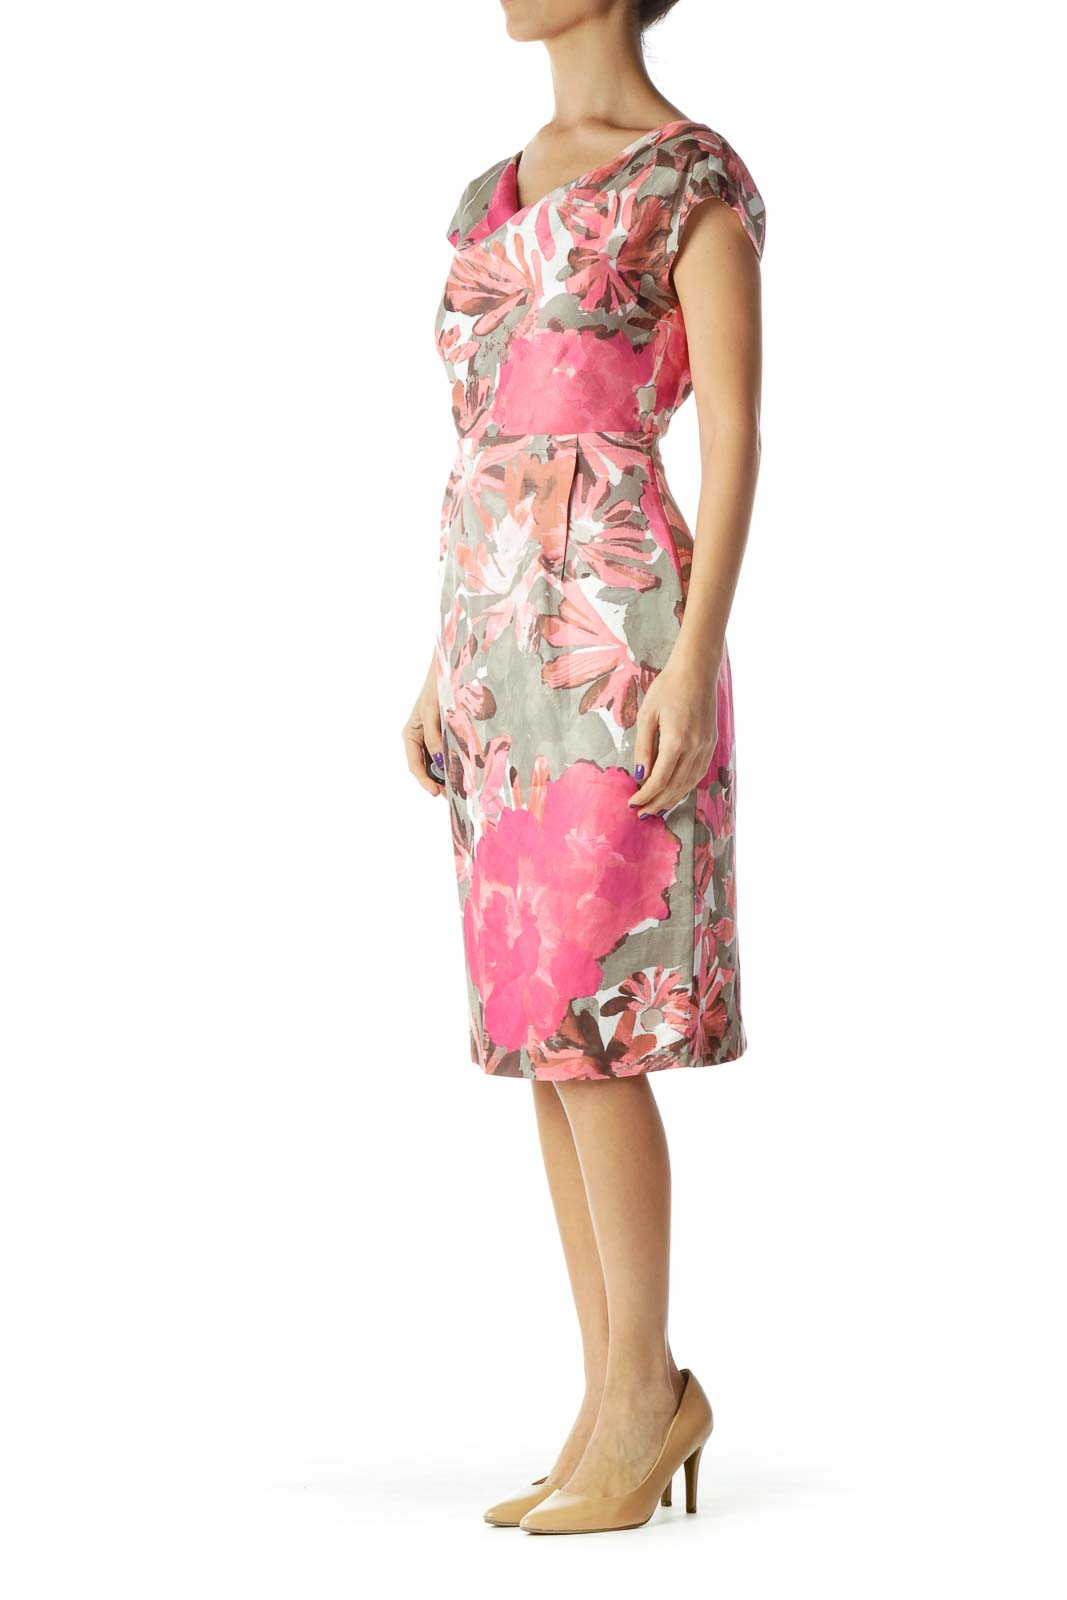 081649730 Shop Pink Brown Floral Print Sheath Dress clothing and handbags at ...